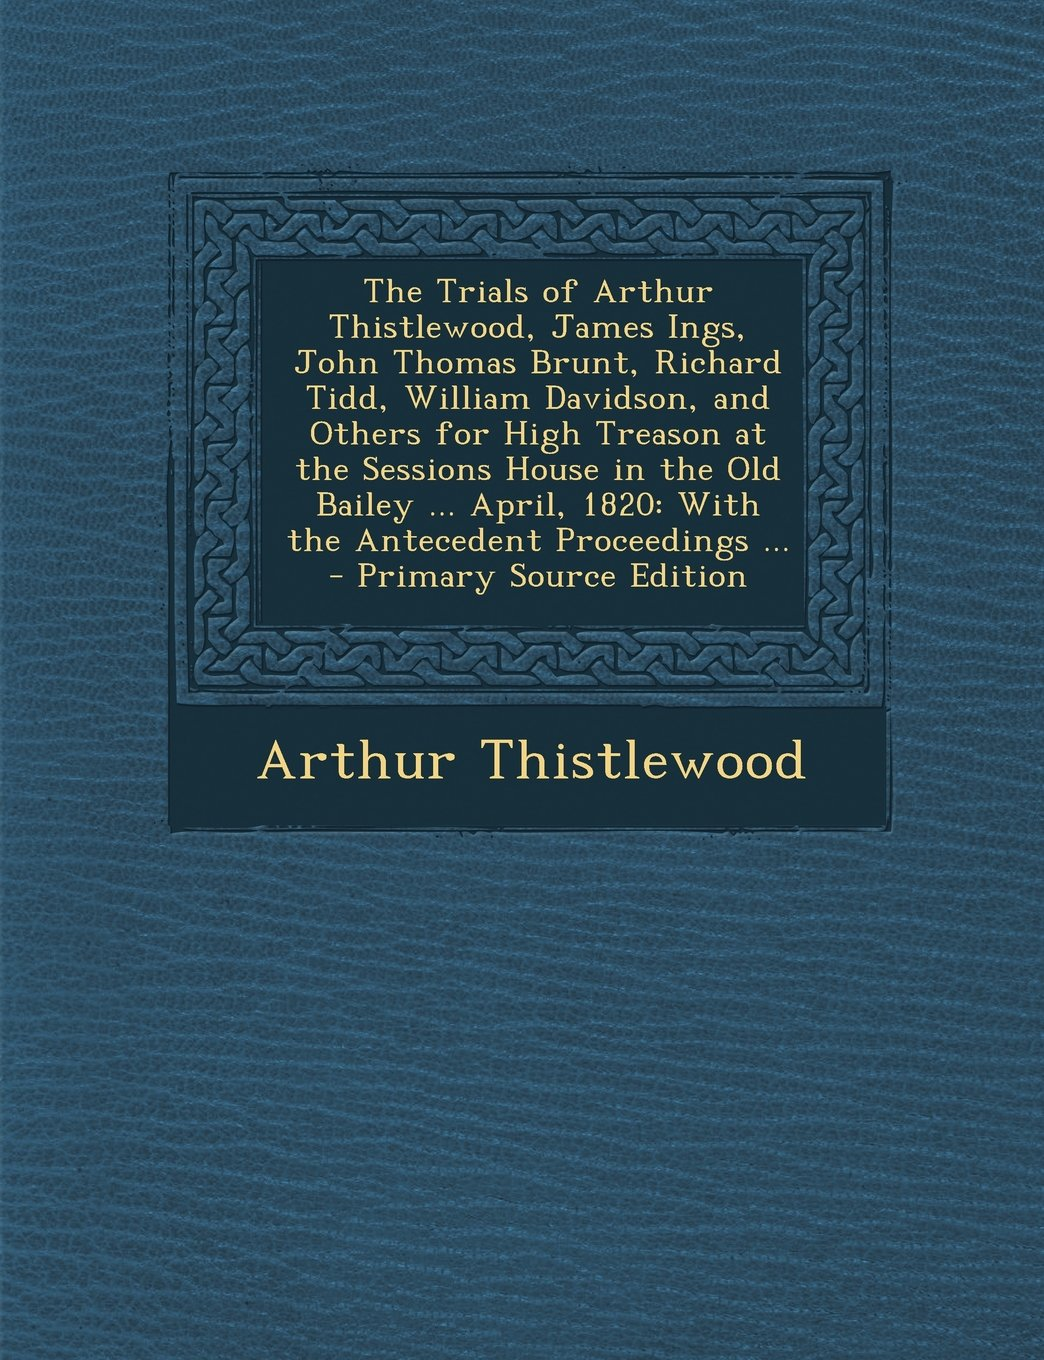 Read Online The Trials of Arthur Thistlewood, James Ings, John Thomas Brunt, Richard Tidd, William Davidson, and Others for High Treason at the Sessions House in pdf epub